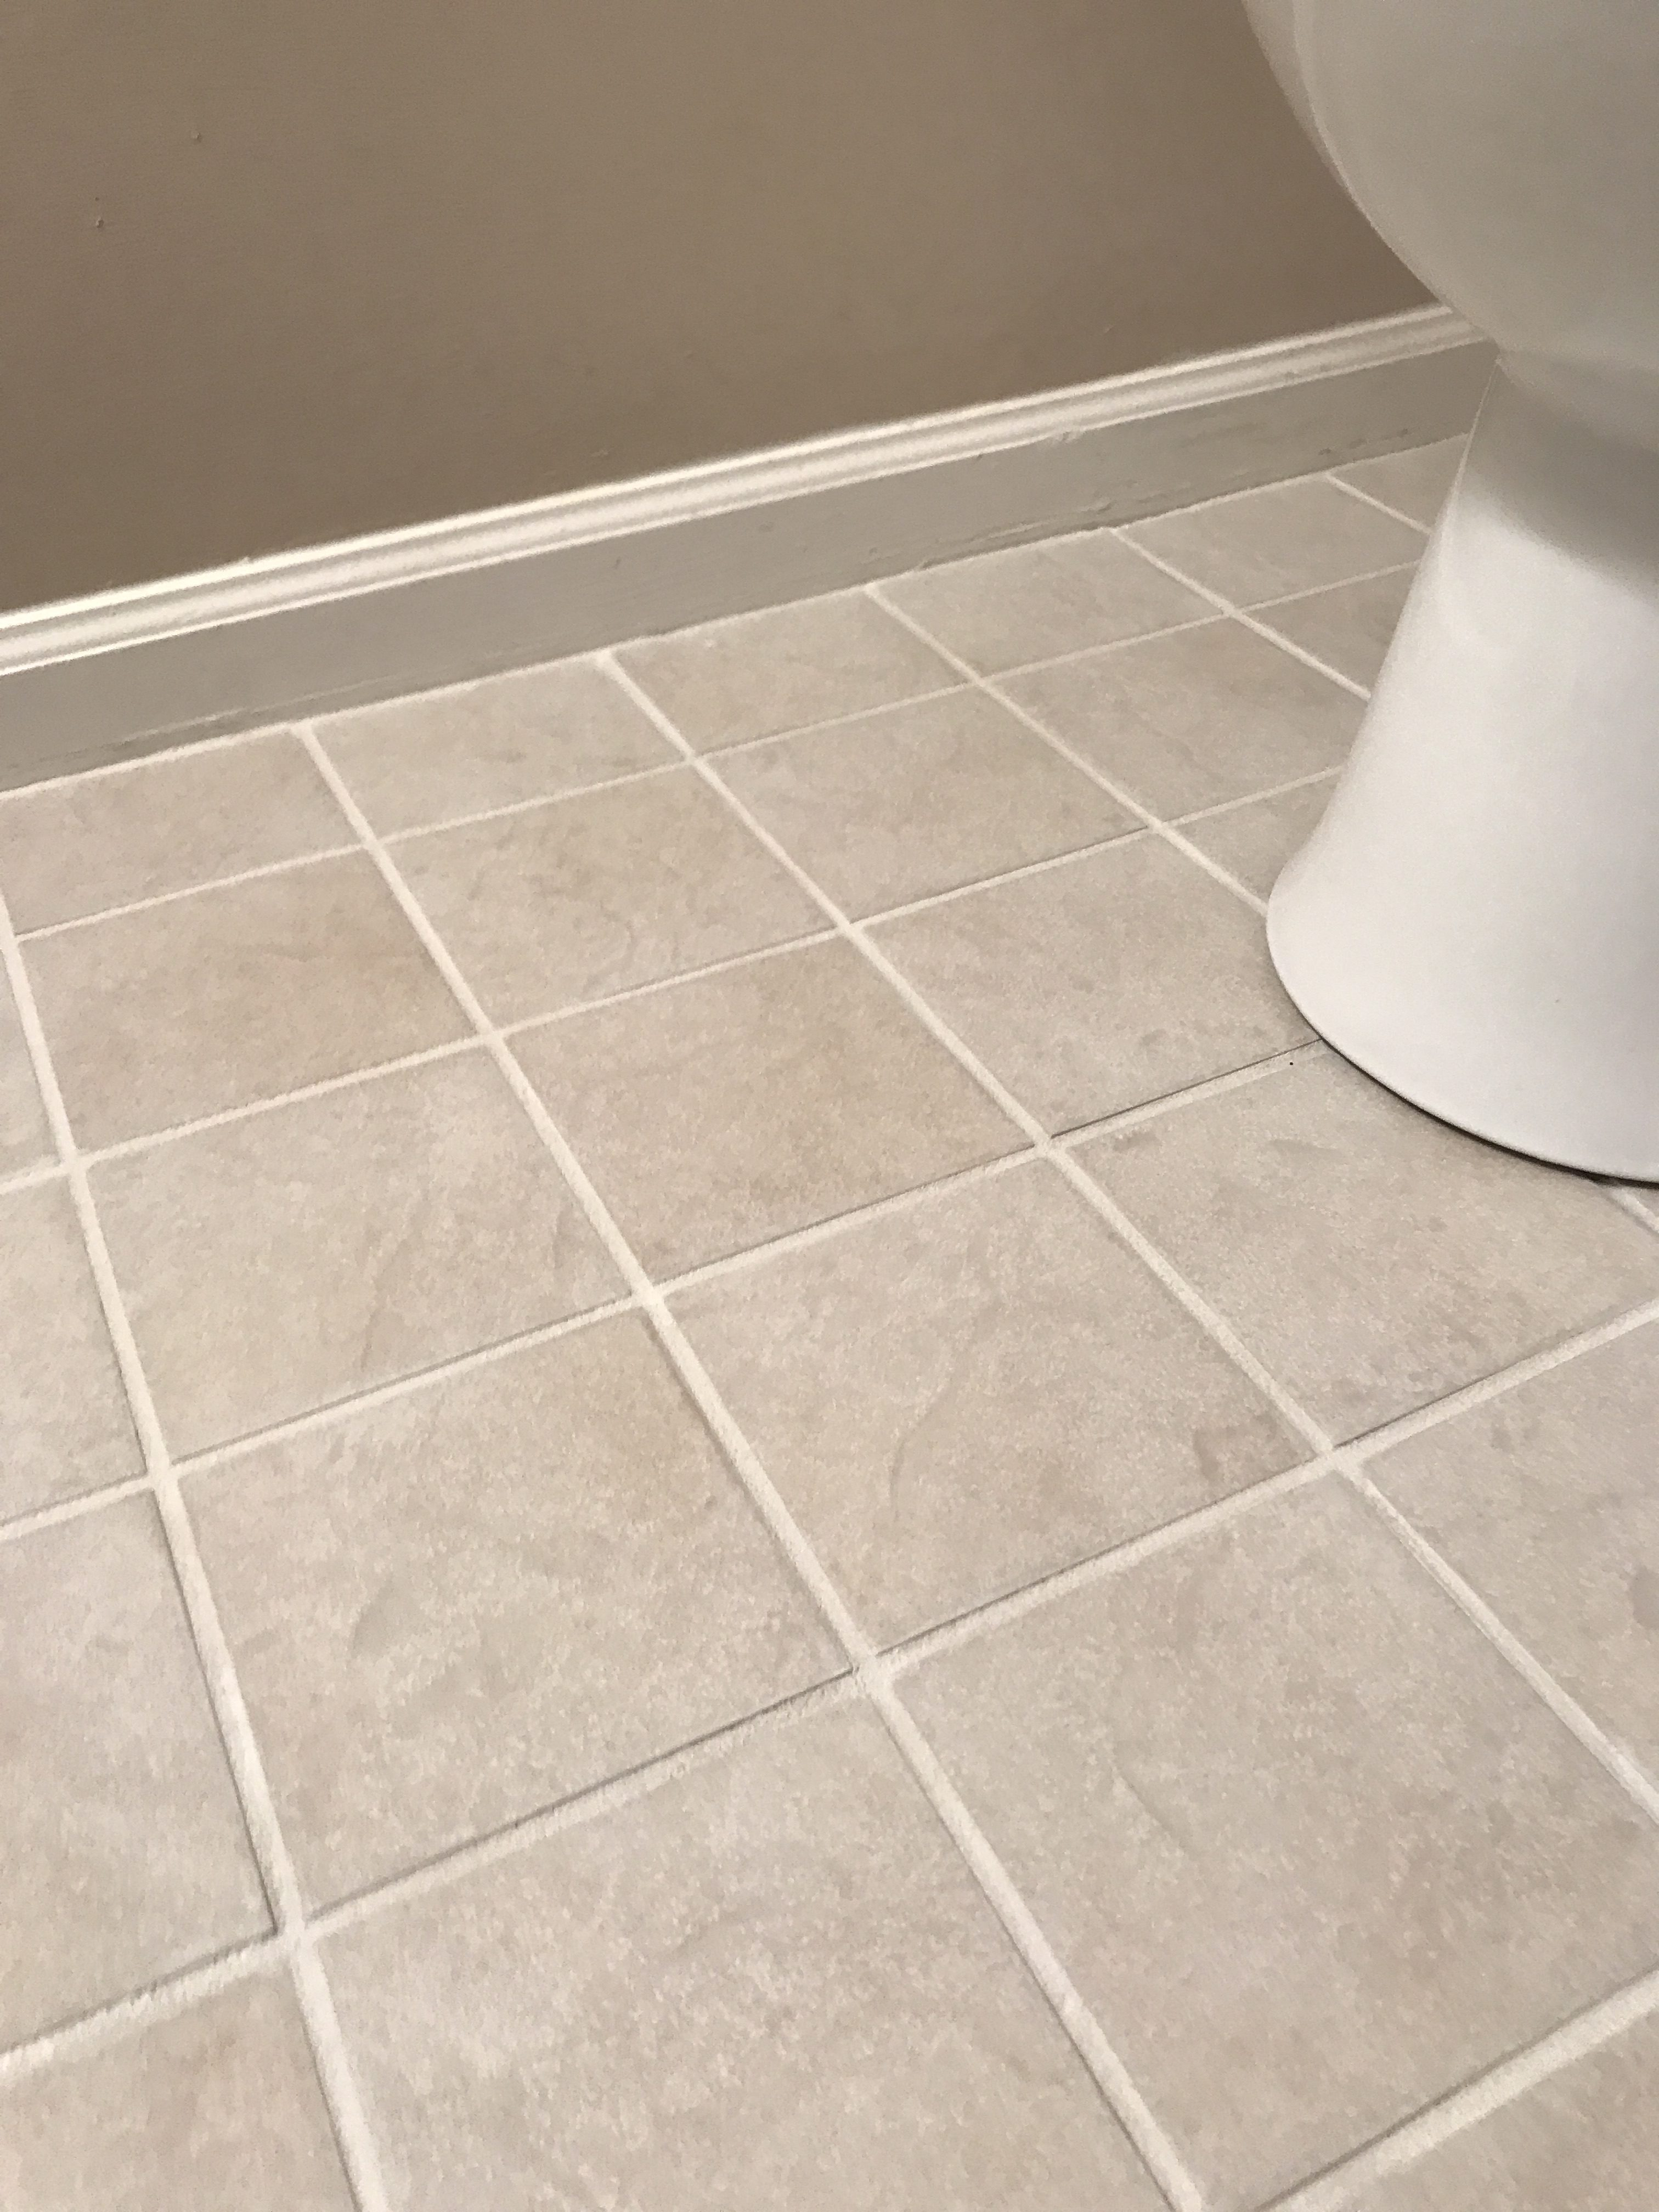 Get rid of ugly grout without ripping up your tile ugly grout makeover diy tile makeover grout renew dailygadgetfo Images